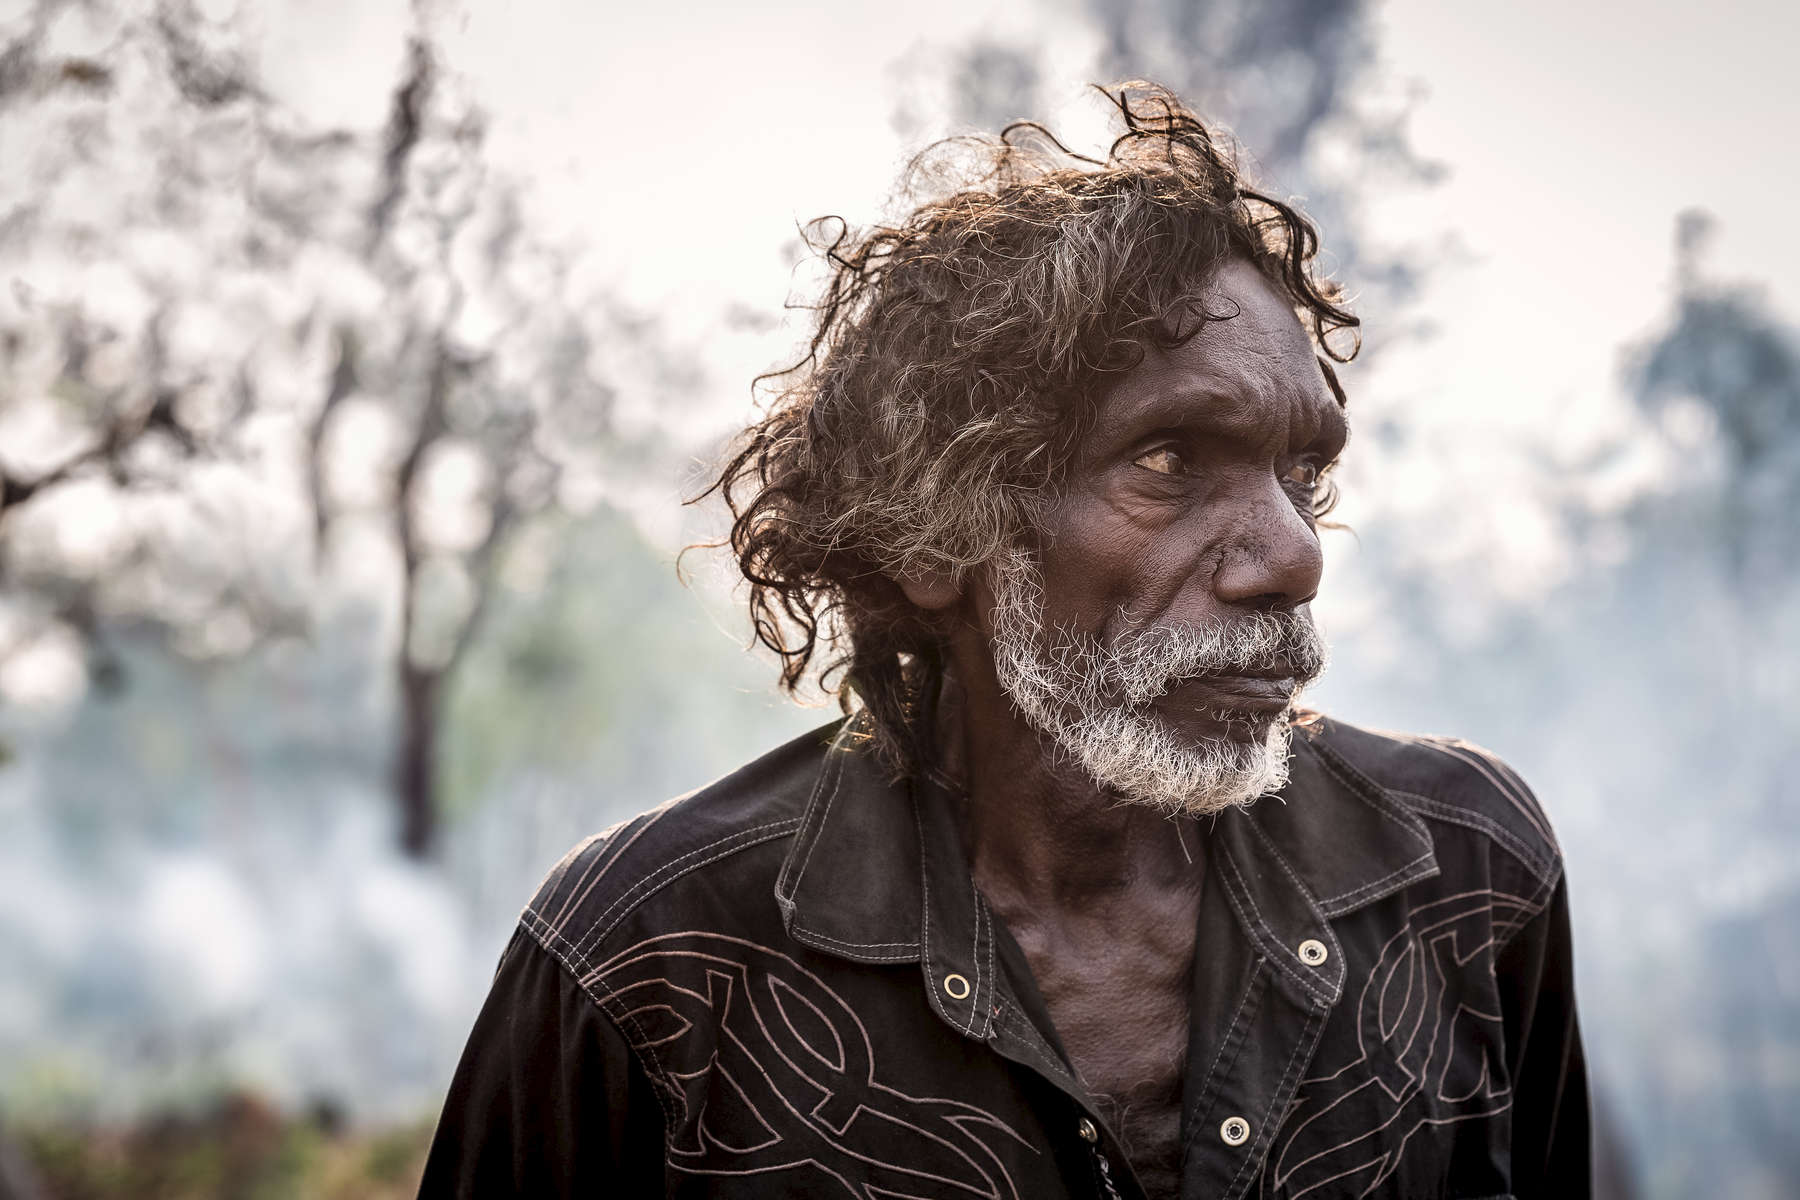 Tom Noytuna backlit by the afternoon sun and smoke from a fire started by the family the previous day in Benebenimbi, a remote part of central Arnhem Land.  Fires are lit here to manage the land, regenerating growth and keeping fuel for larger fires at low levels.